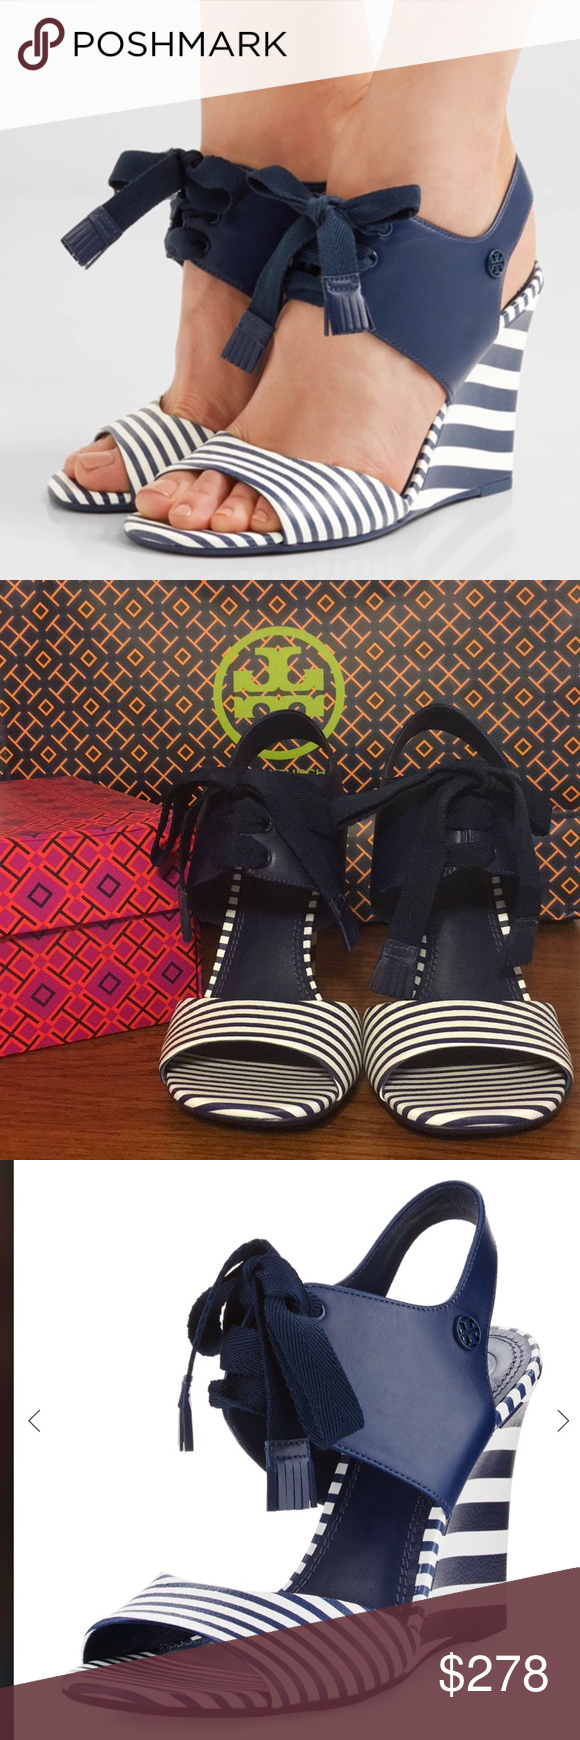 b134216f926 NIB Tory Burch Maritime Striped Wedge Sandal Tory Burch Maritime blue and  white leather sandal with